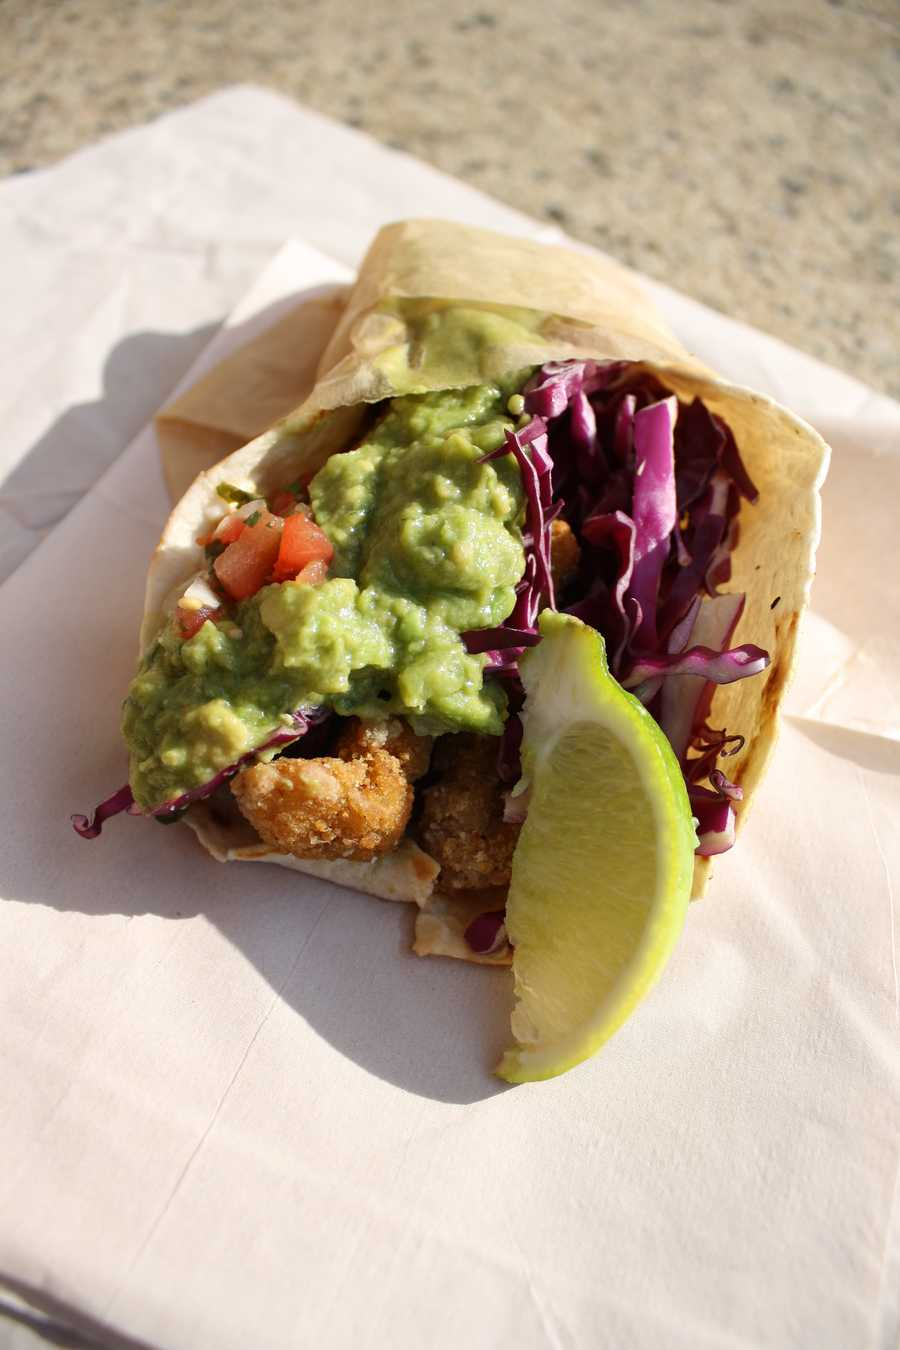 The pescado taco (crispy catfish w/ red cabbage, pico de gallo, Mexican tartar sauce, and chipotle salsa)